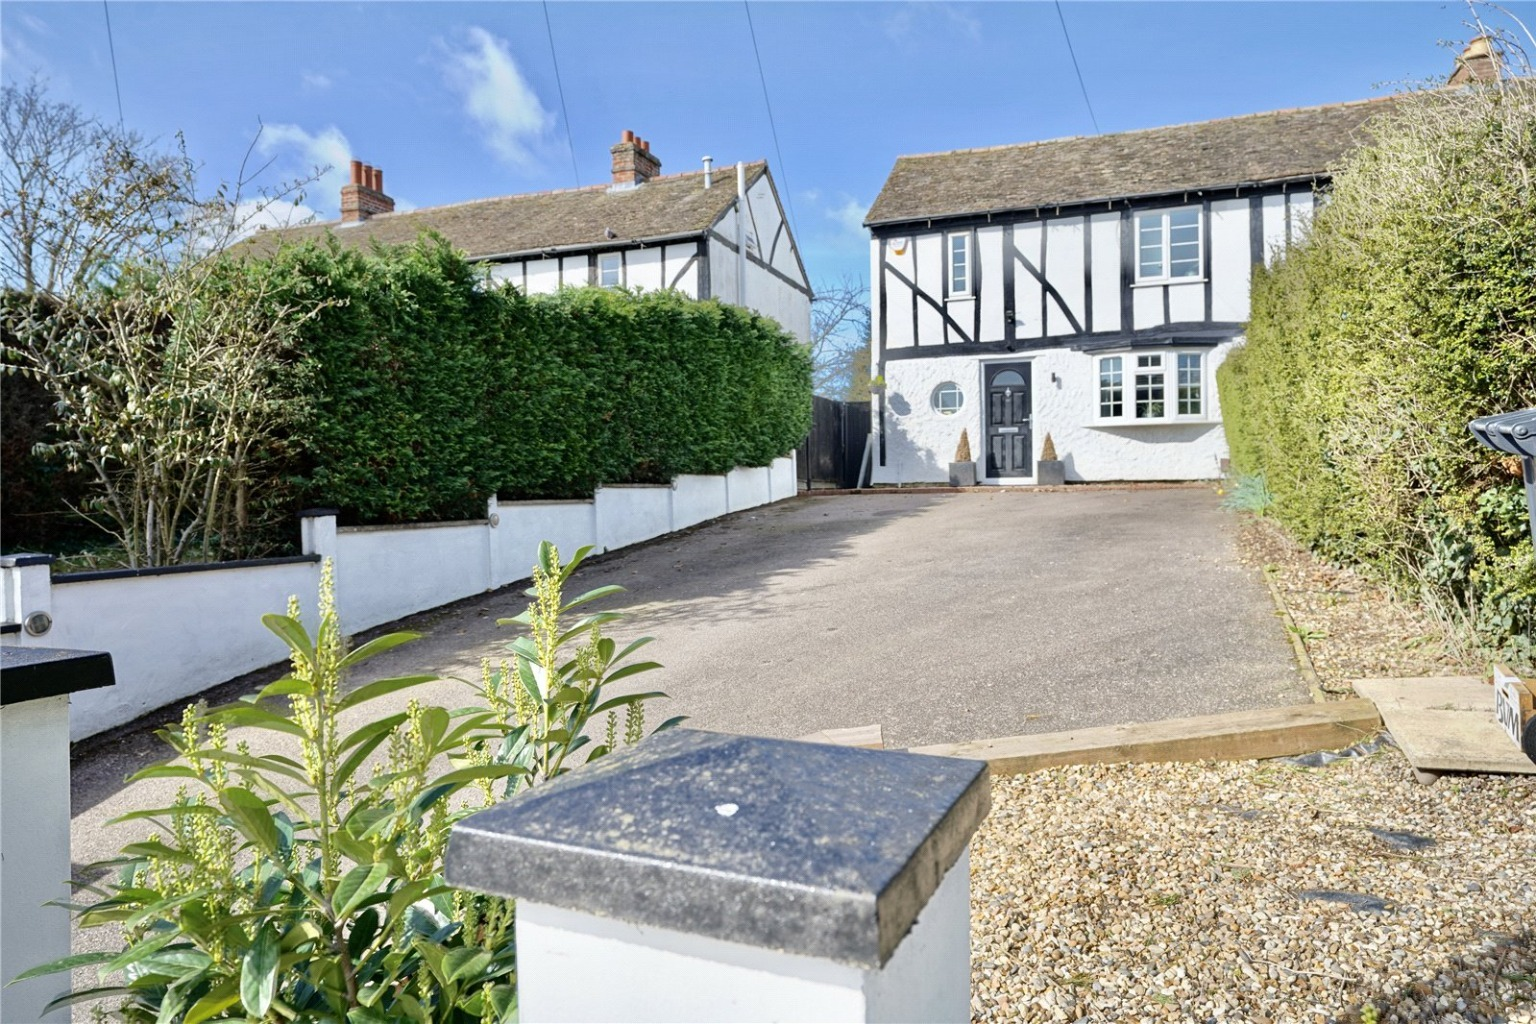 3 bed semi-detached house for sale in Great North Road, St. Neots  - Property Image 2